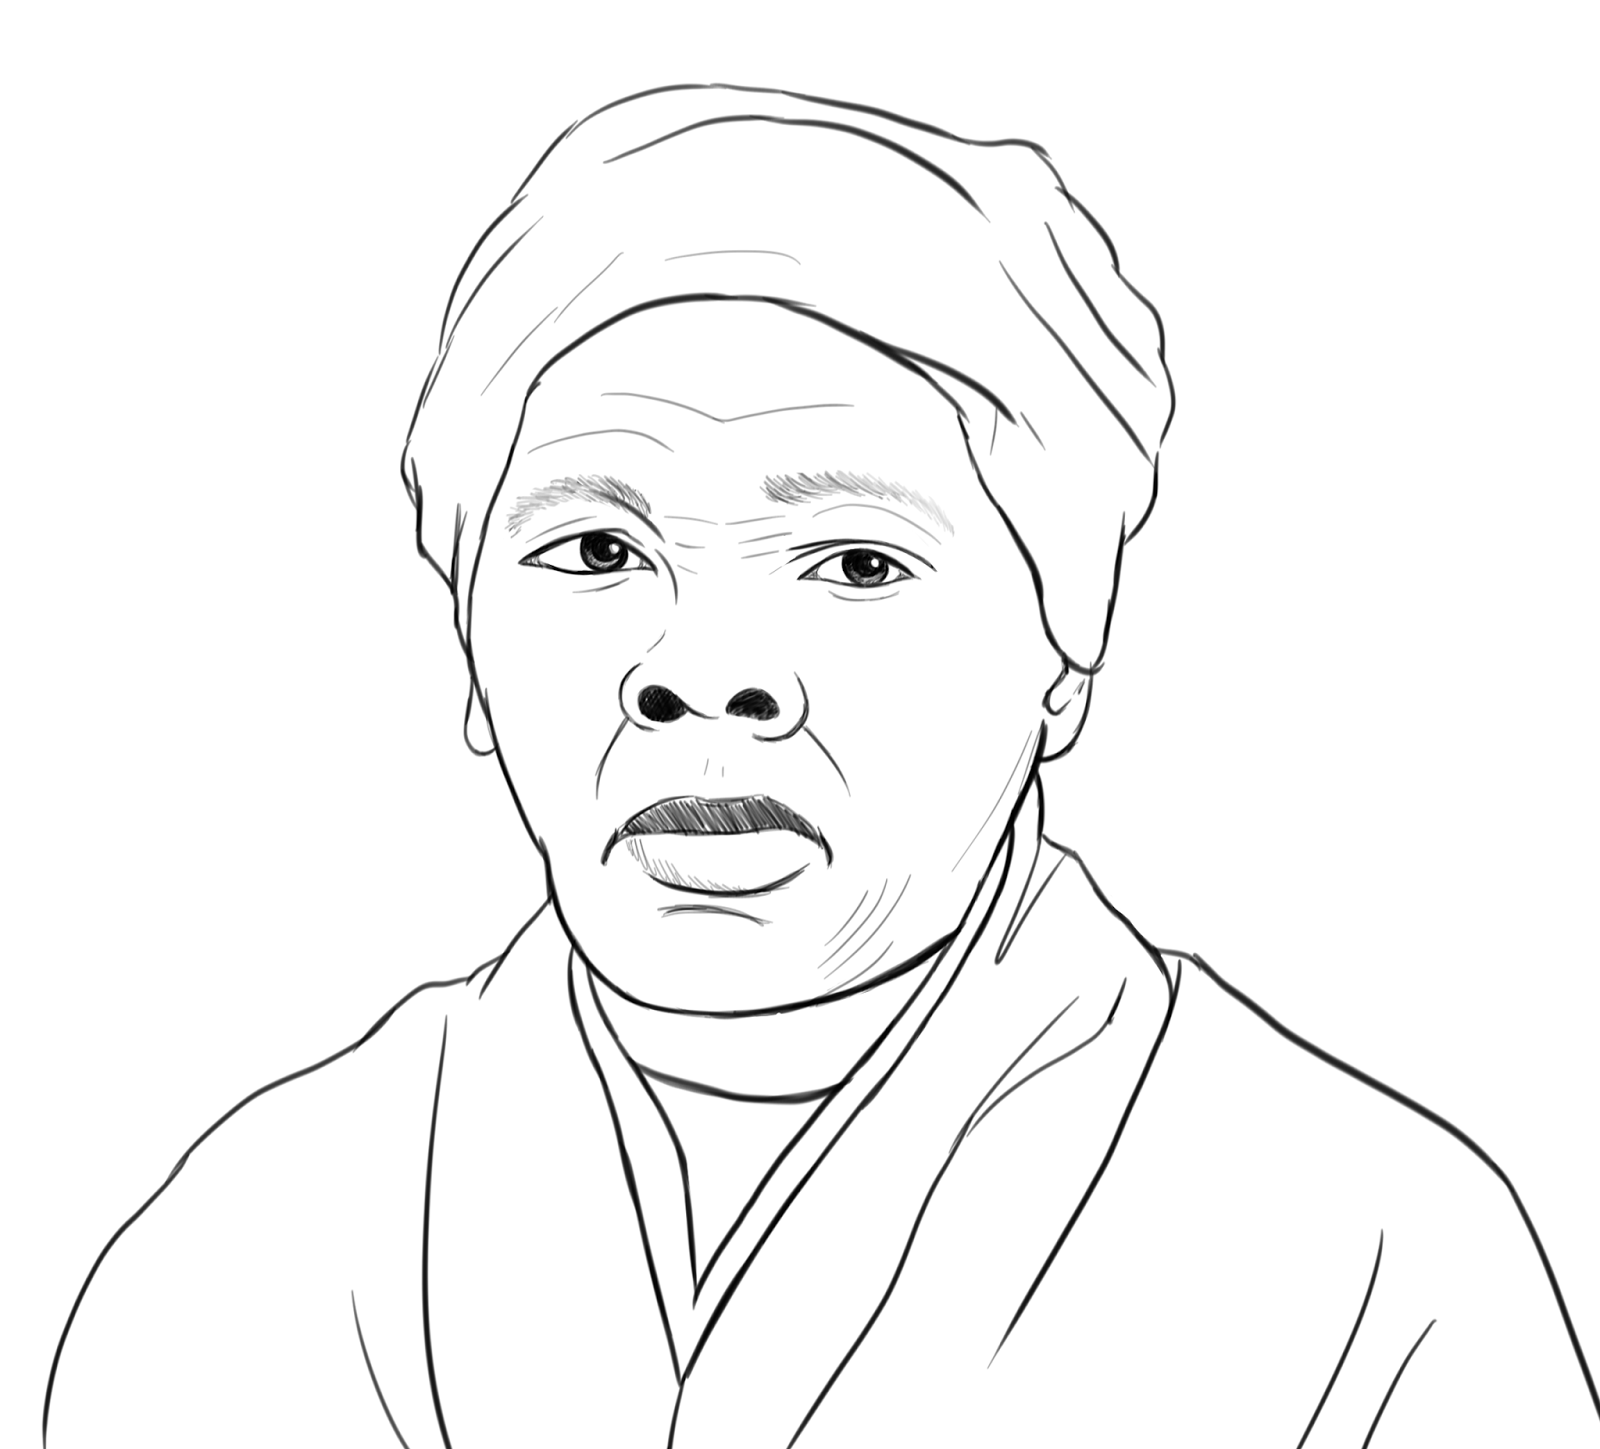 Harriet Tubman Coloring Page Sheets, Harriet Tubman Coloring ...